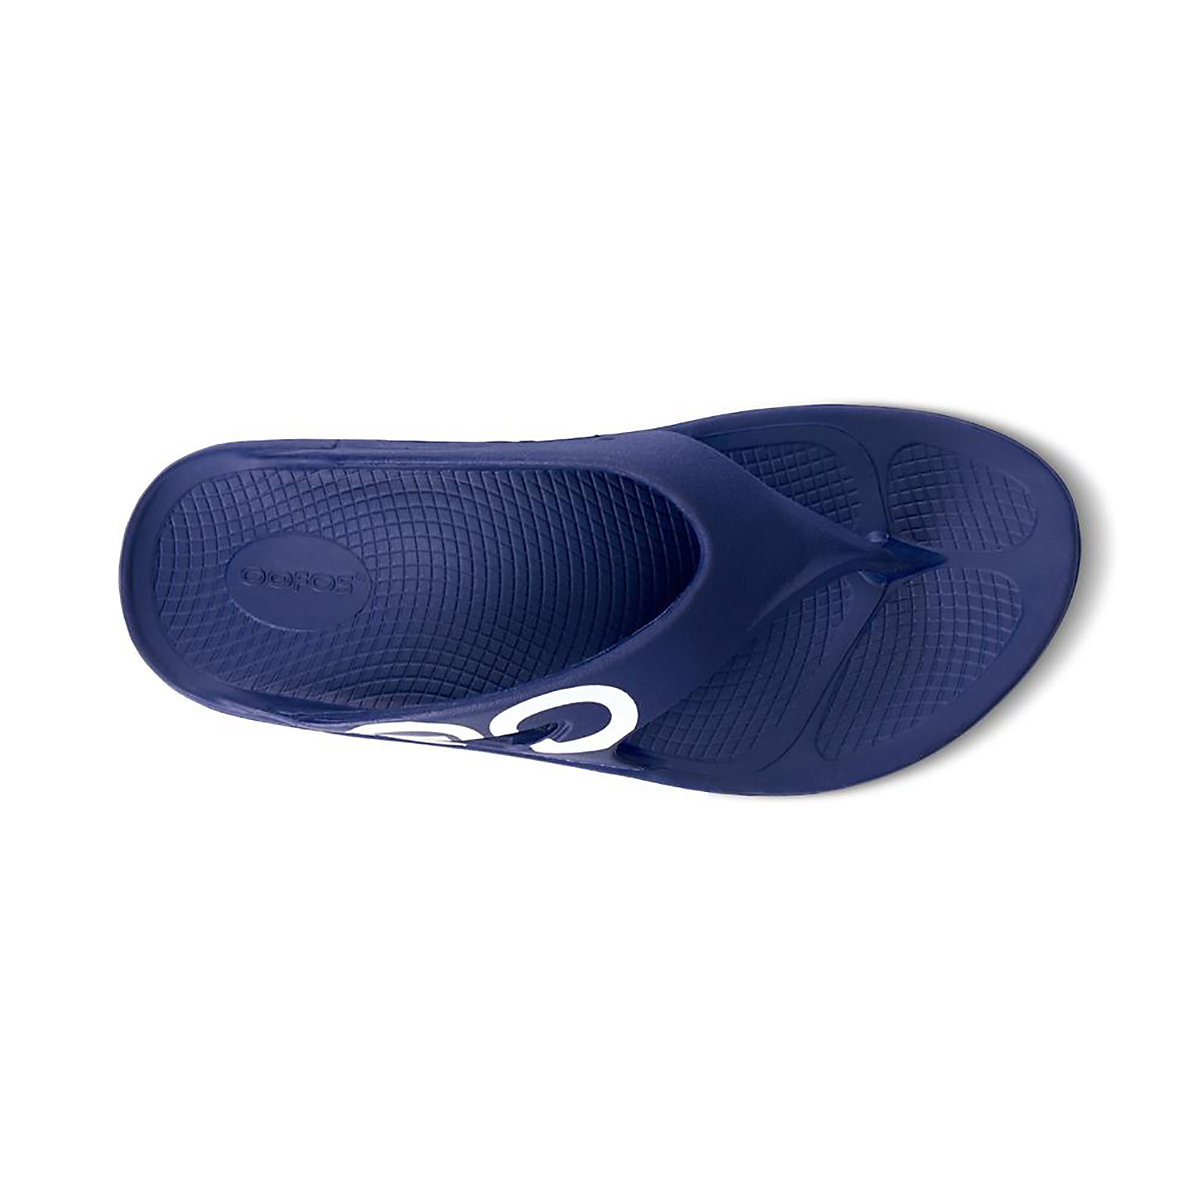 Oofos OOriginal Sport Recovery Sandal - Color: Navy - Size: M7/W9 - Width: Regular, Navy, large, image 4